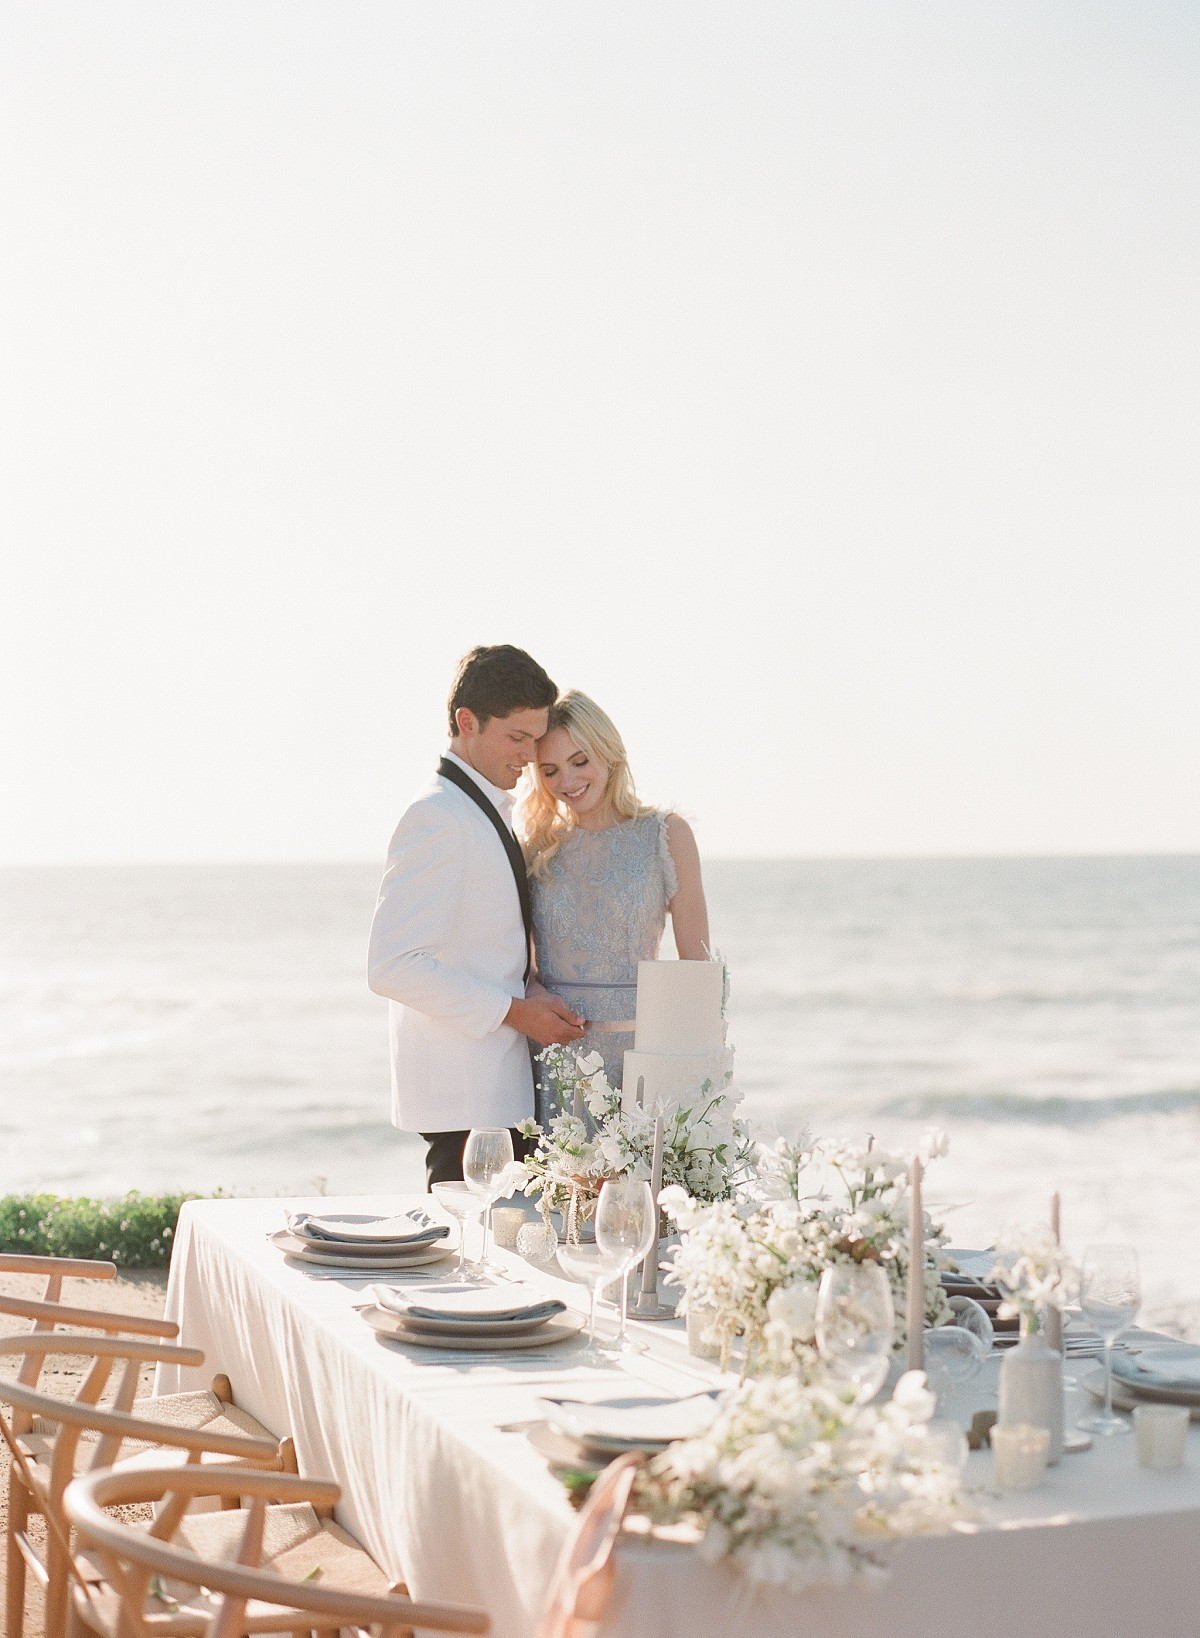 Small Wedding Reception Ideas - Lost Coast Photography